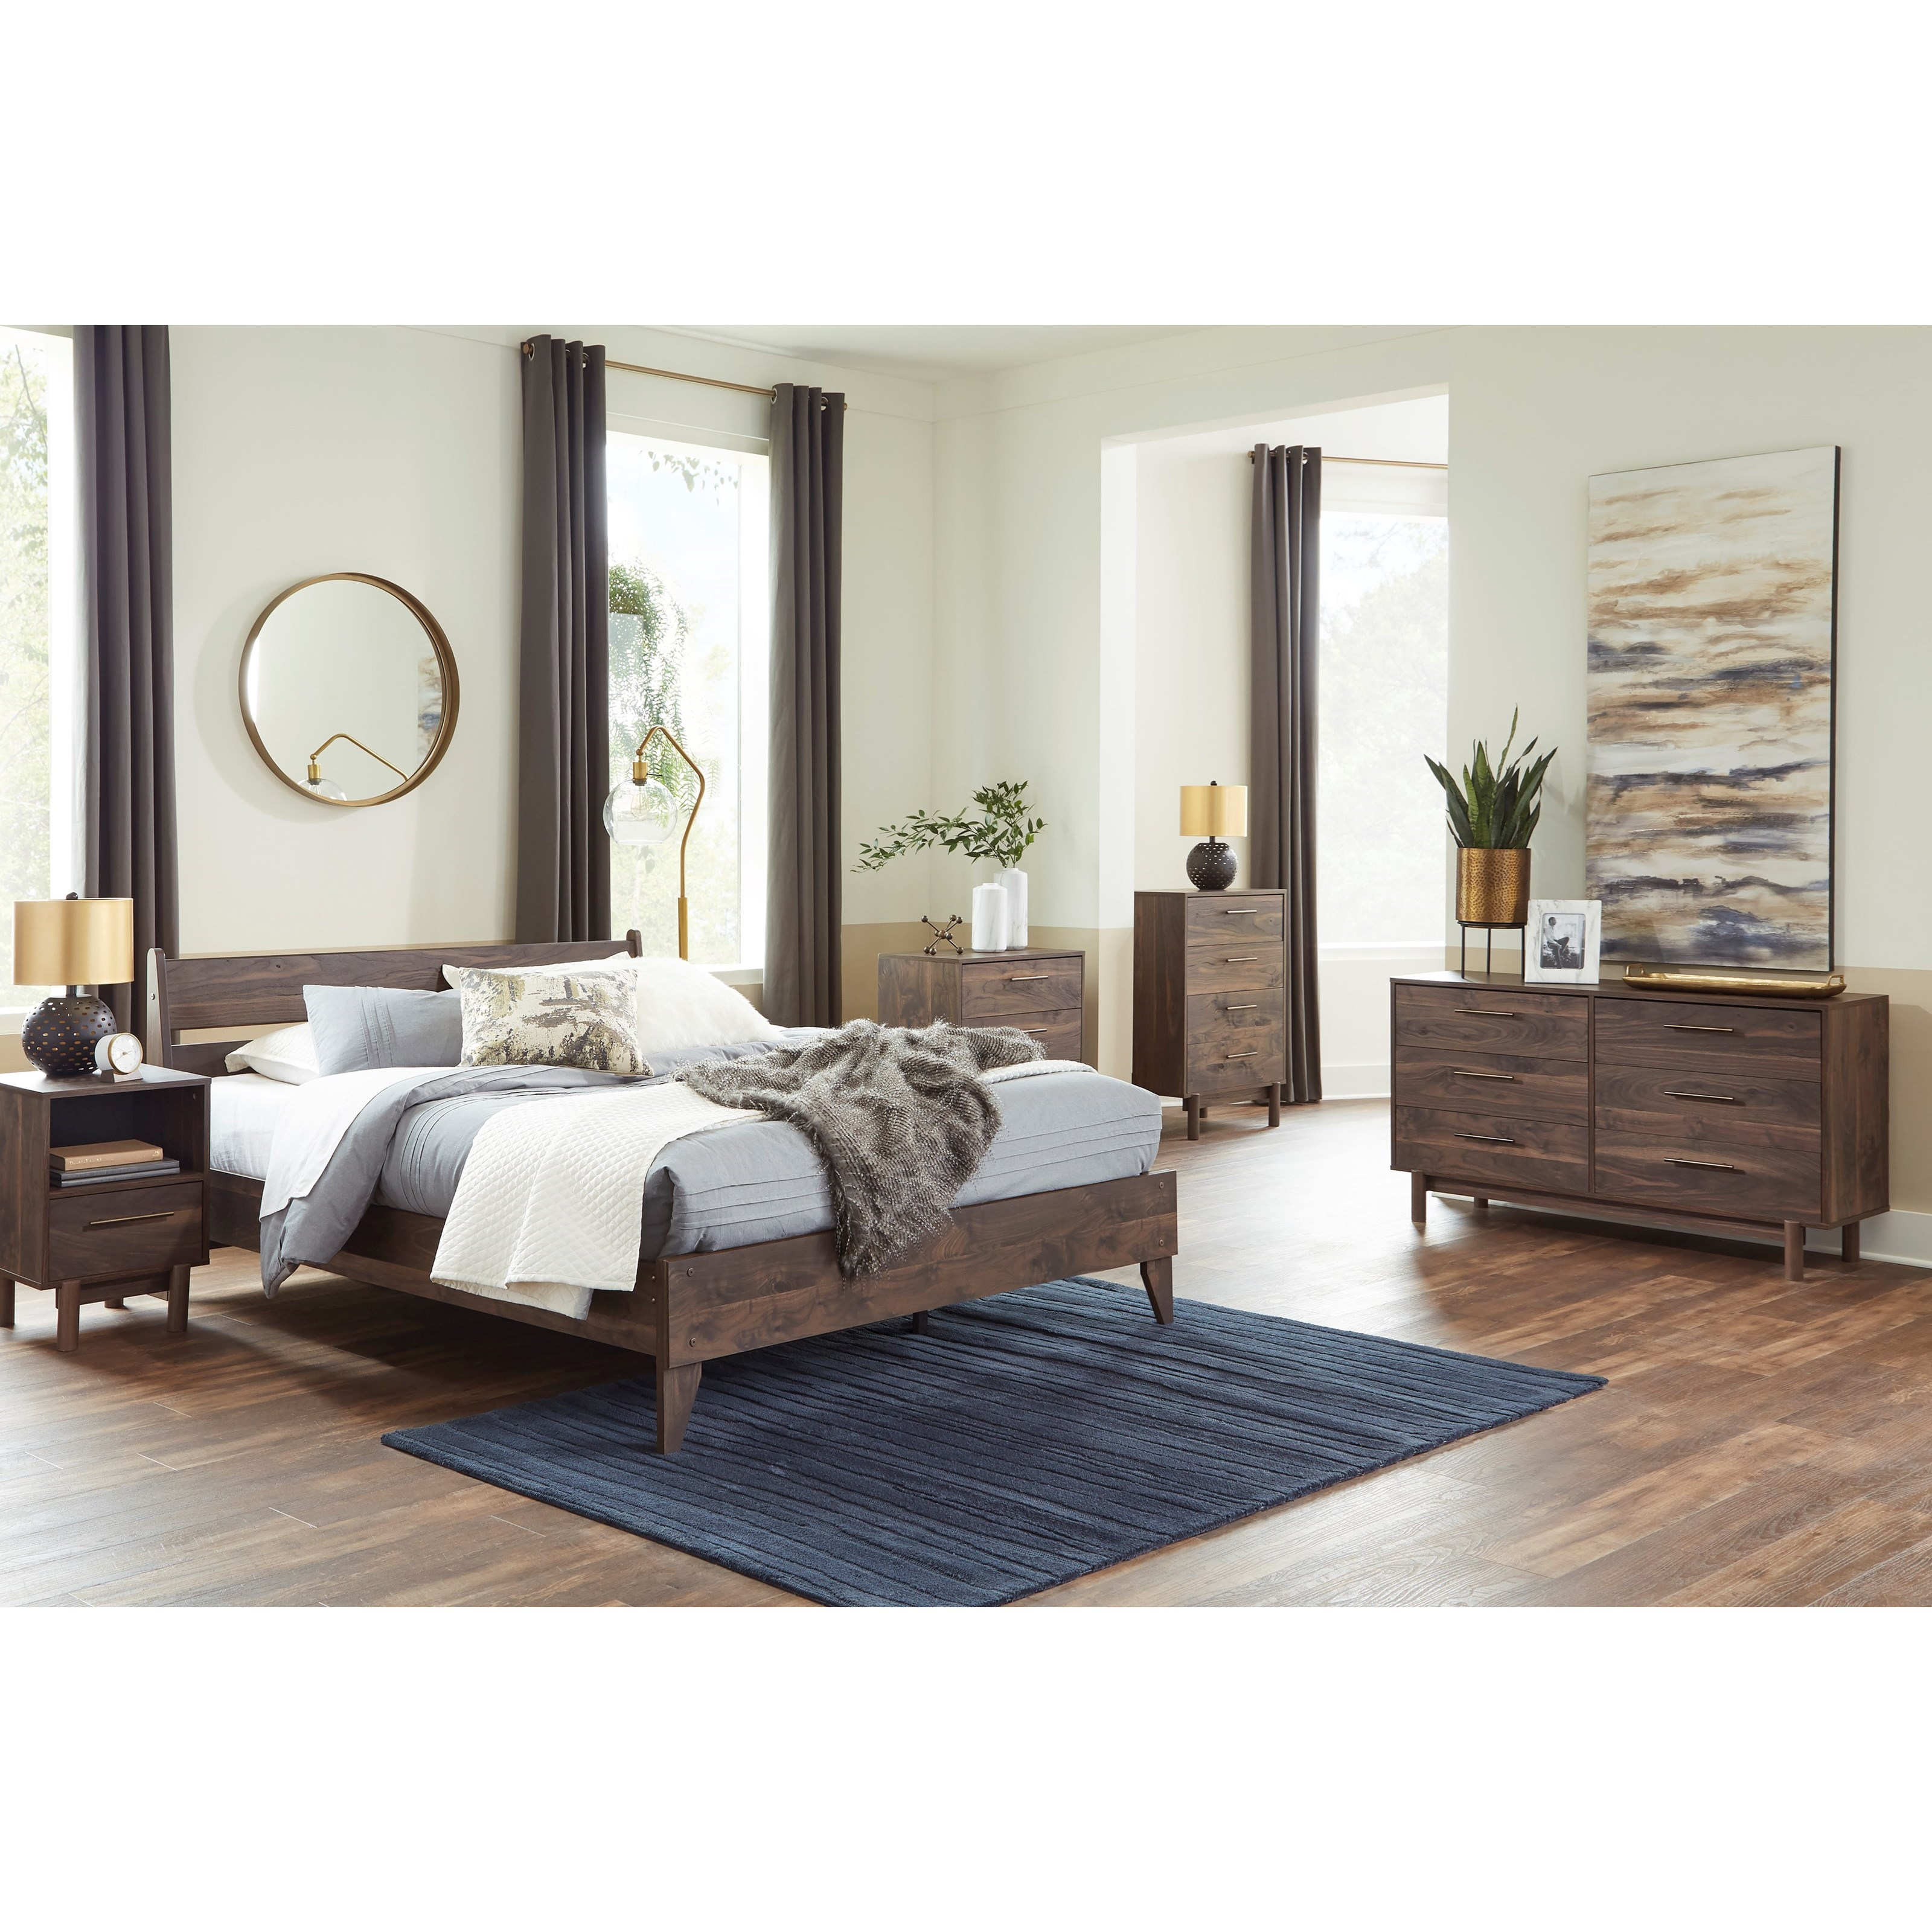 Calverson Full Bedroom Group  by Ashley (Signature Design) at Johnny Janosik